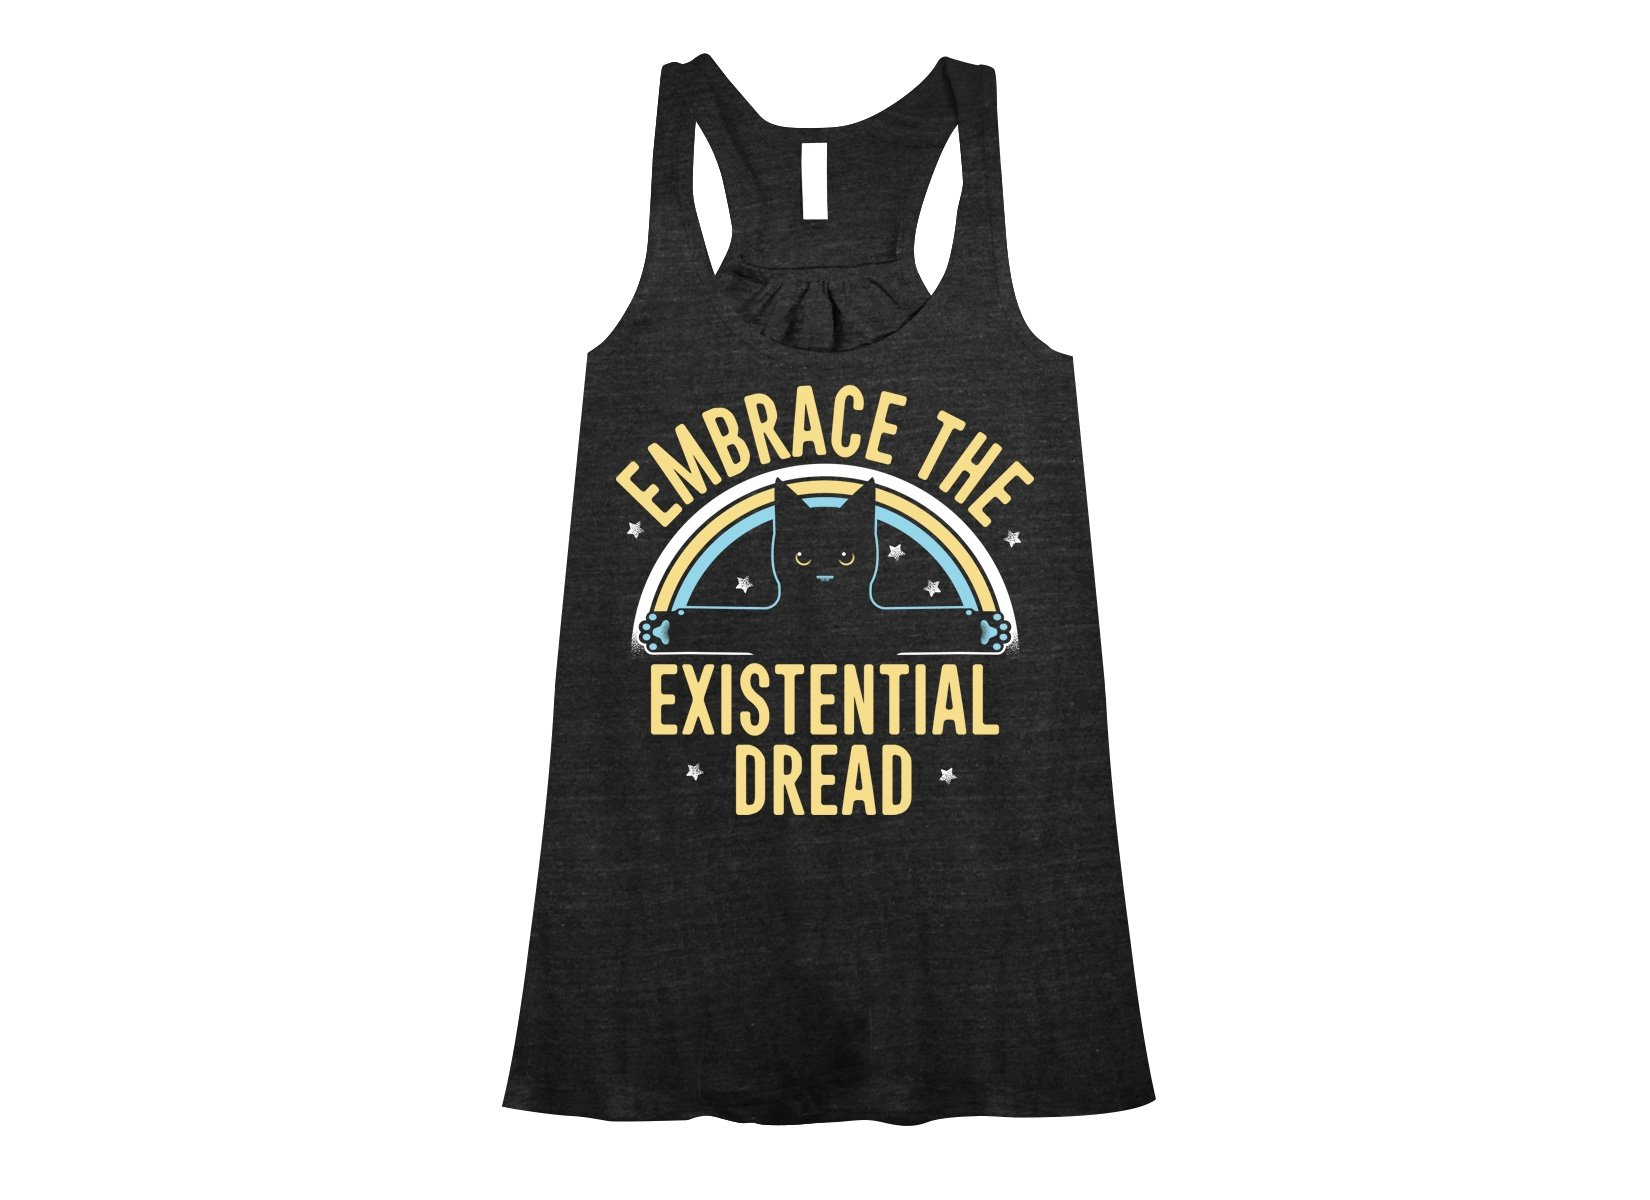 Embrace The Existential Dread on Womens Tanks T-Shirt